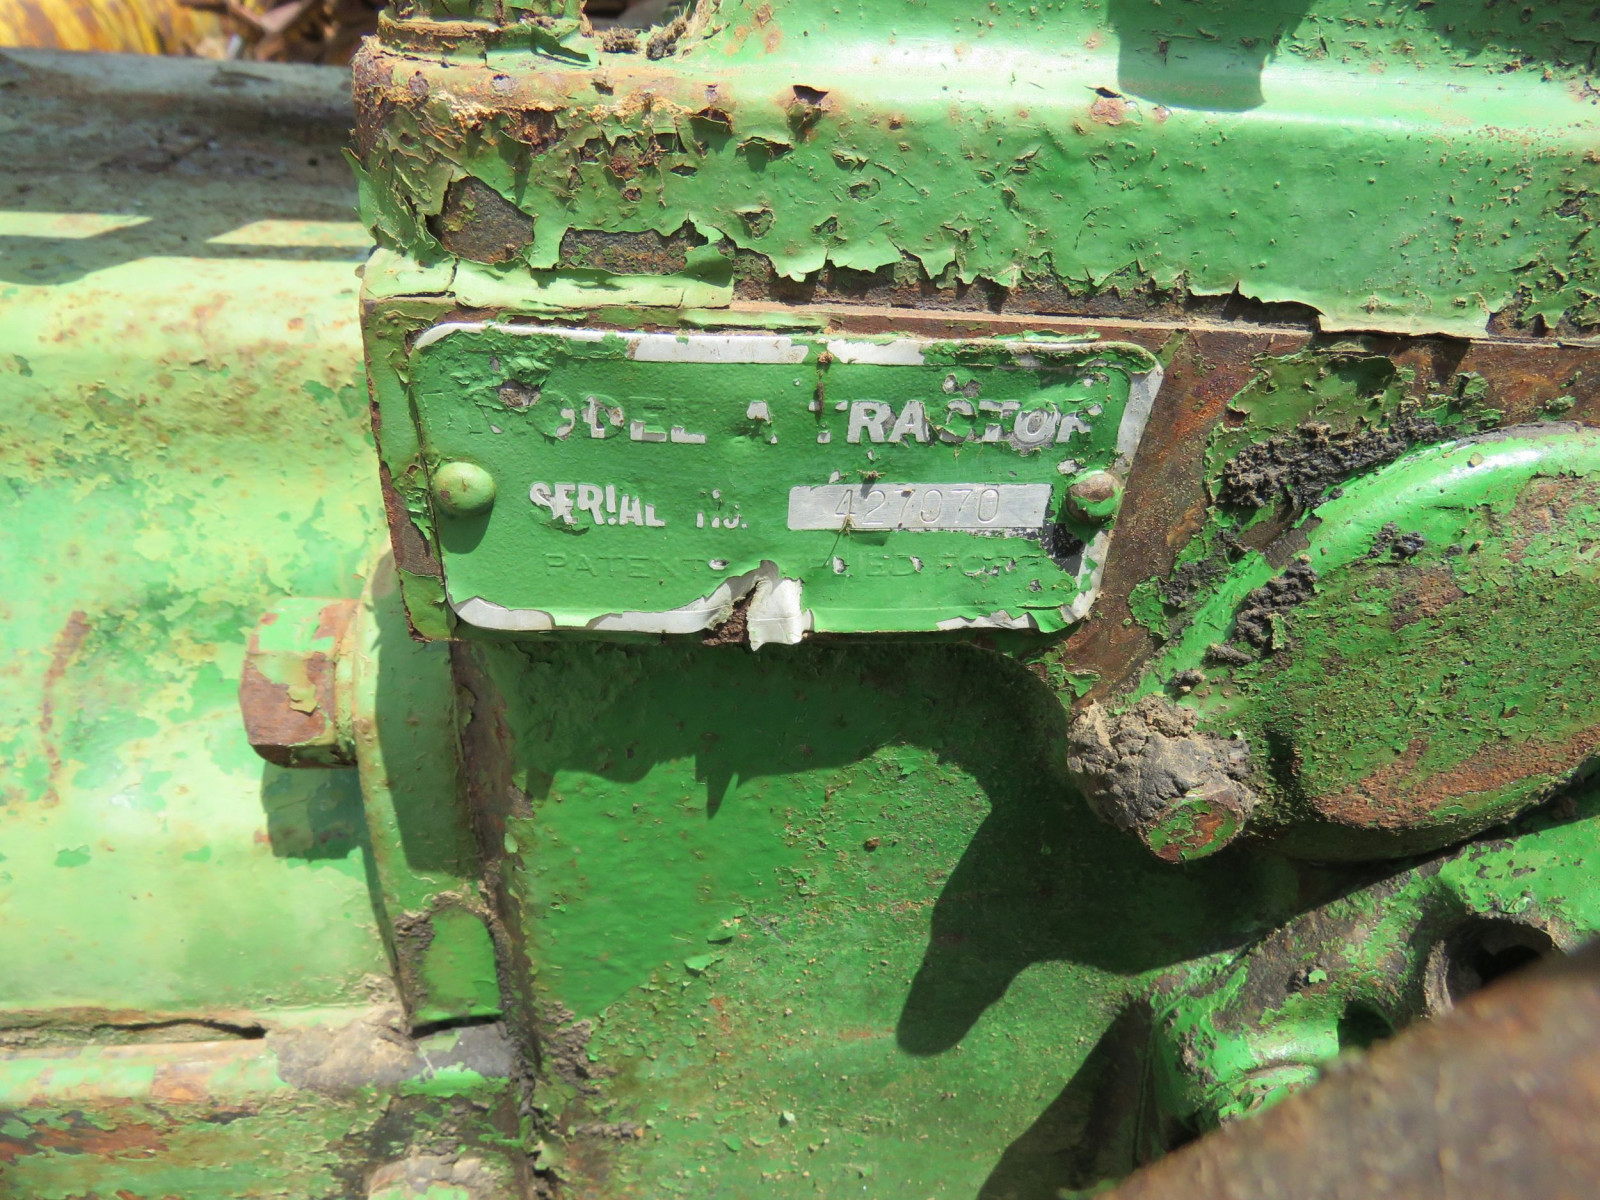 1936 John Deere Unstyled A Tractor - Image 6